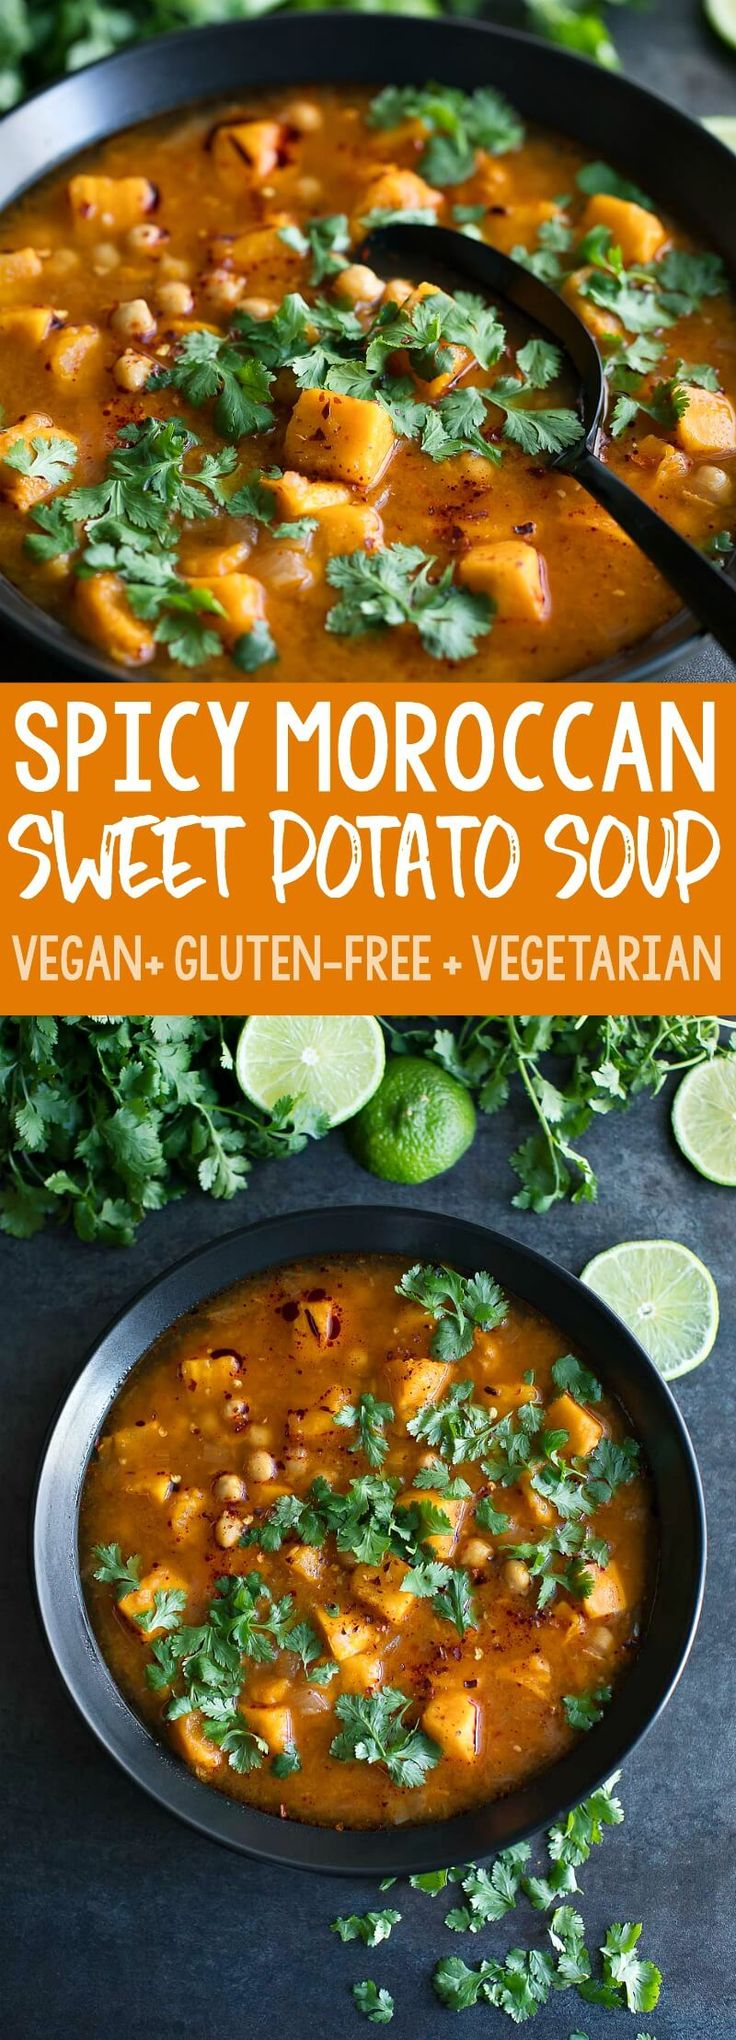 Instant Pot Spicy Moroccan Sweet Potato Soup